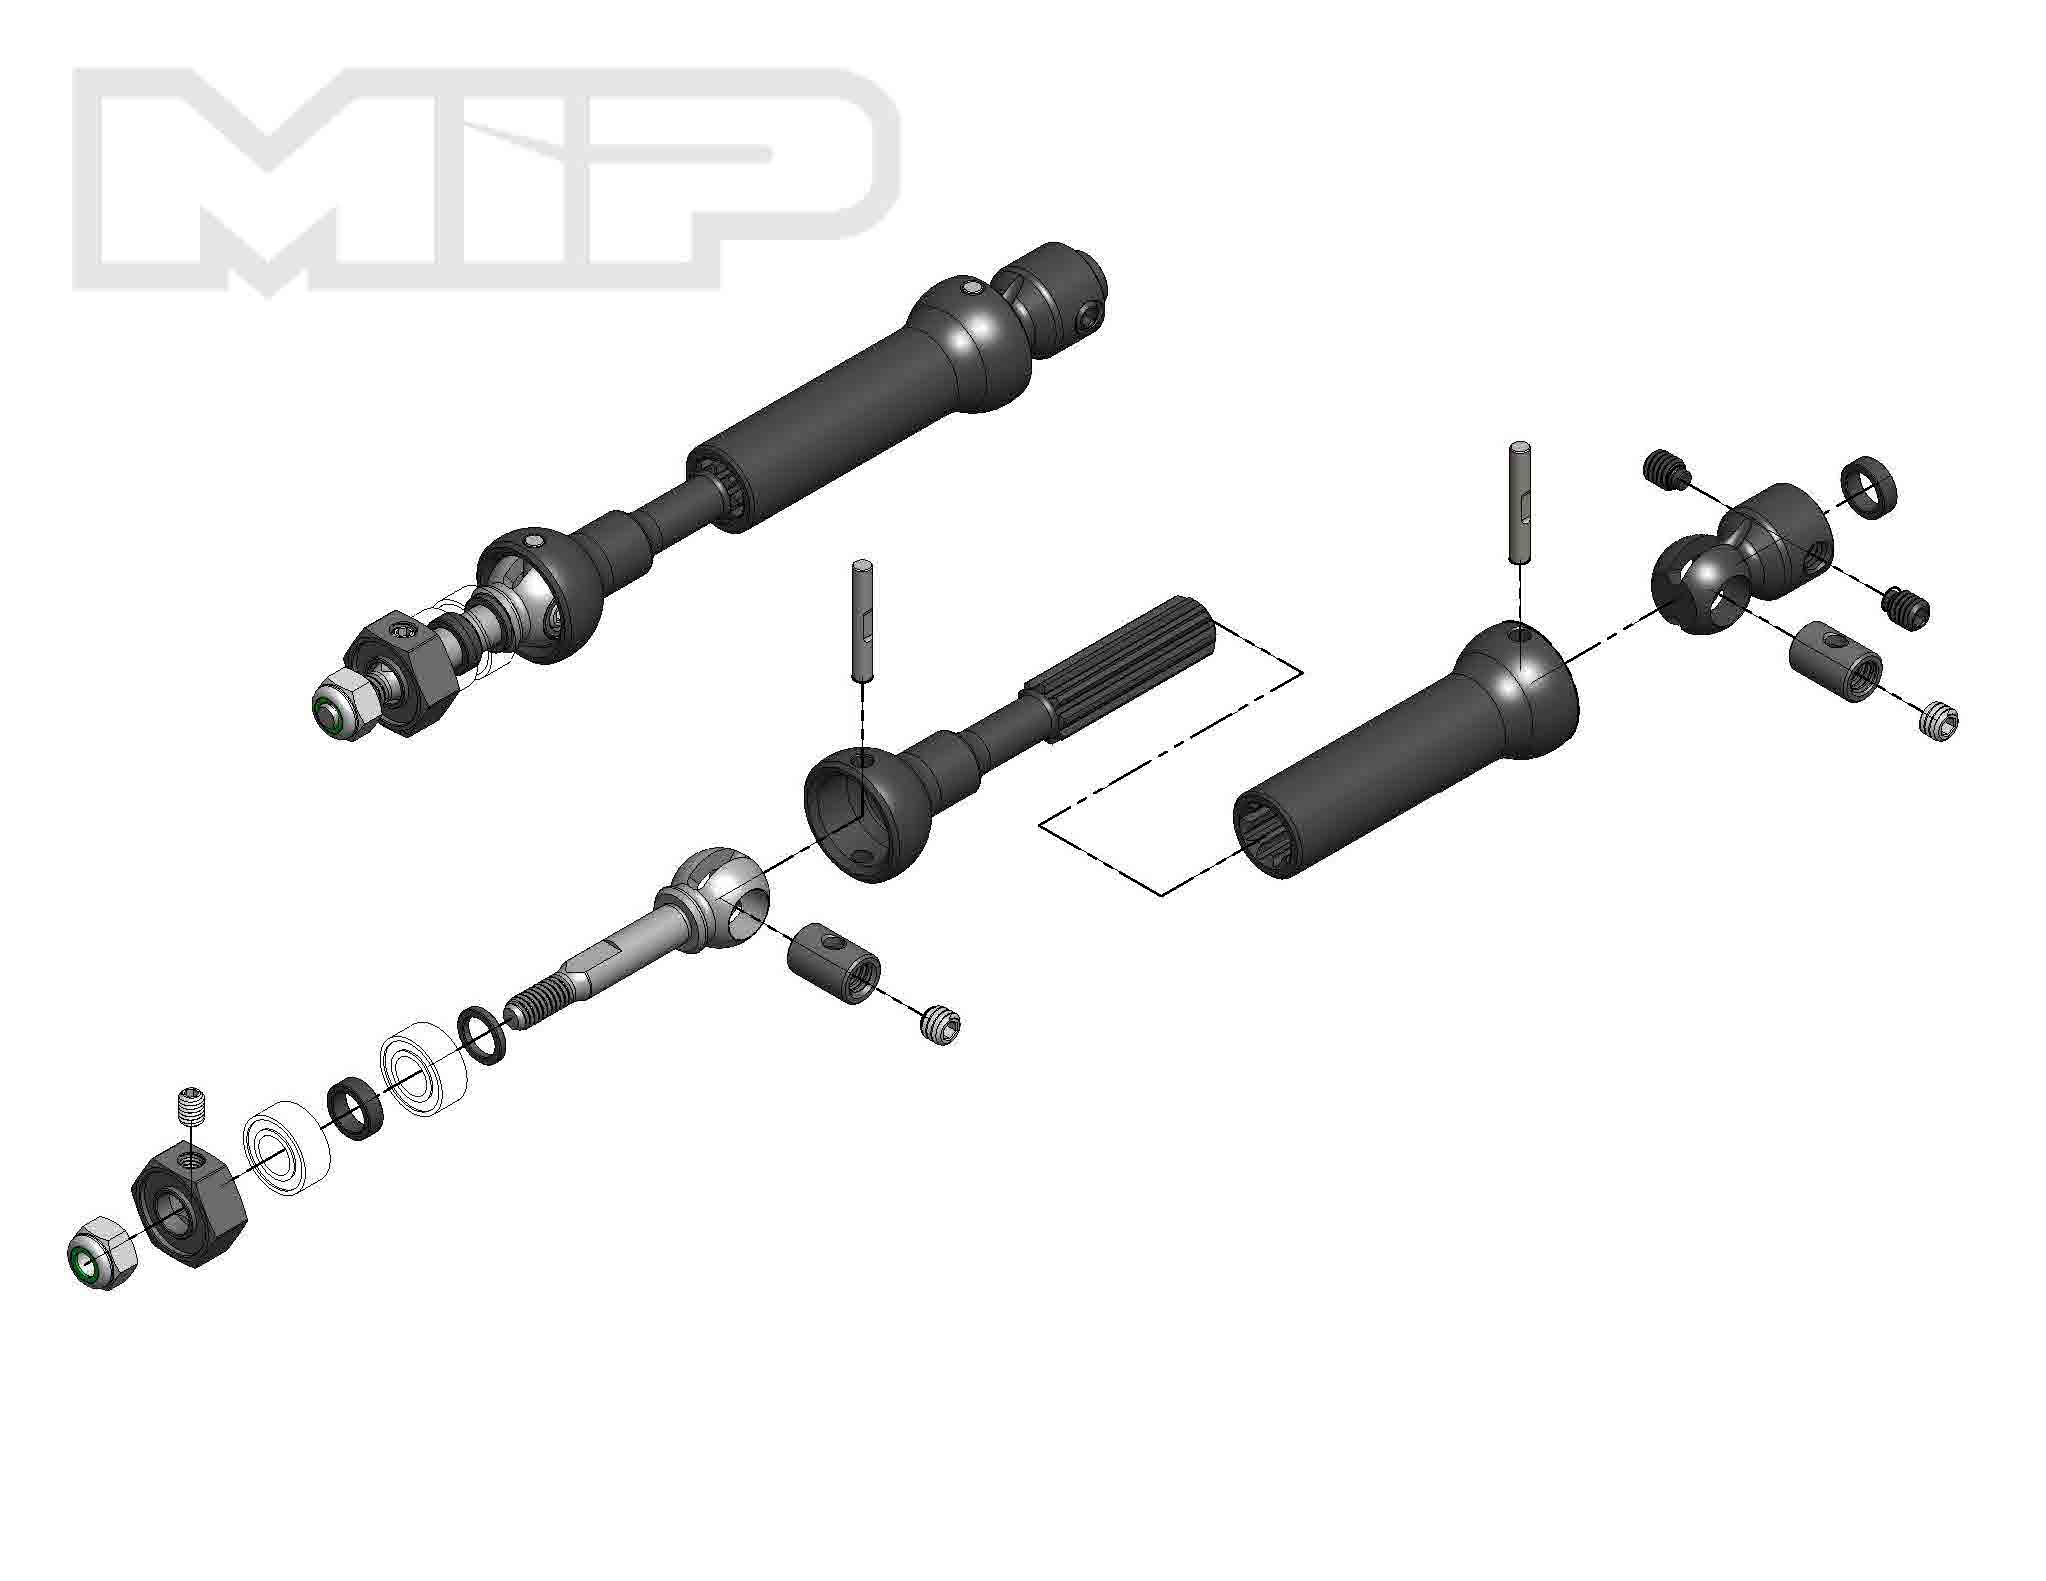 Mip X Duty Cvd Drive Kit Rear 87mm To 112mm W 5mm Bearing Traxxas Nitro Rustler Parts Diagram Quick View